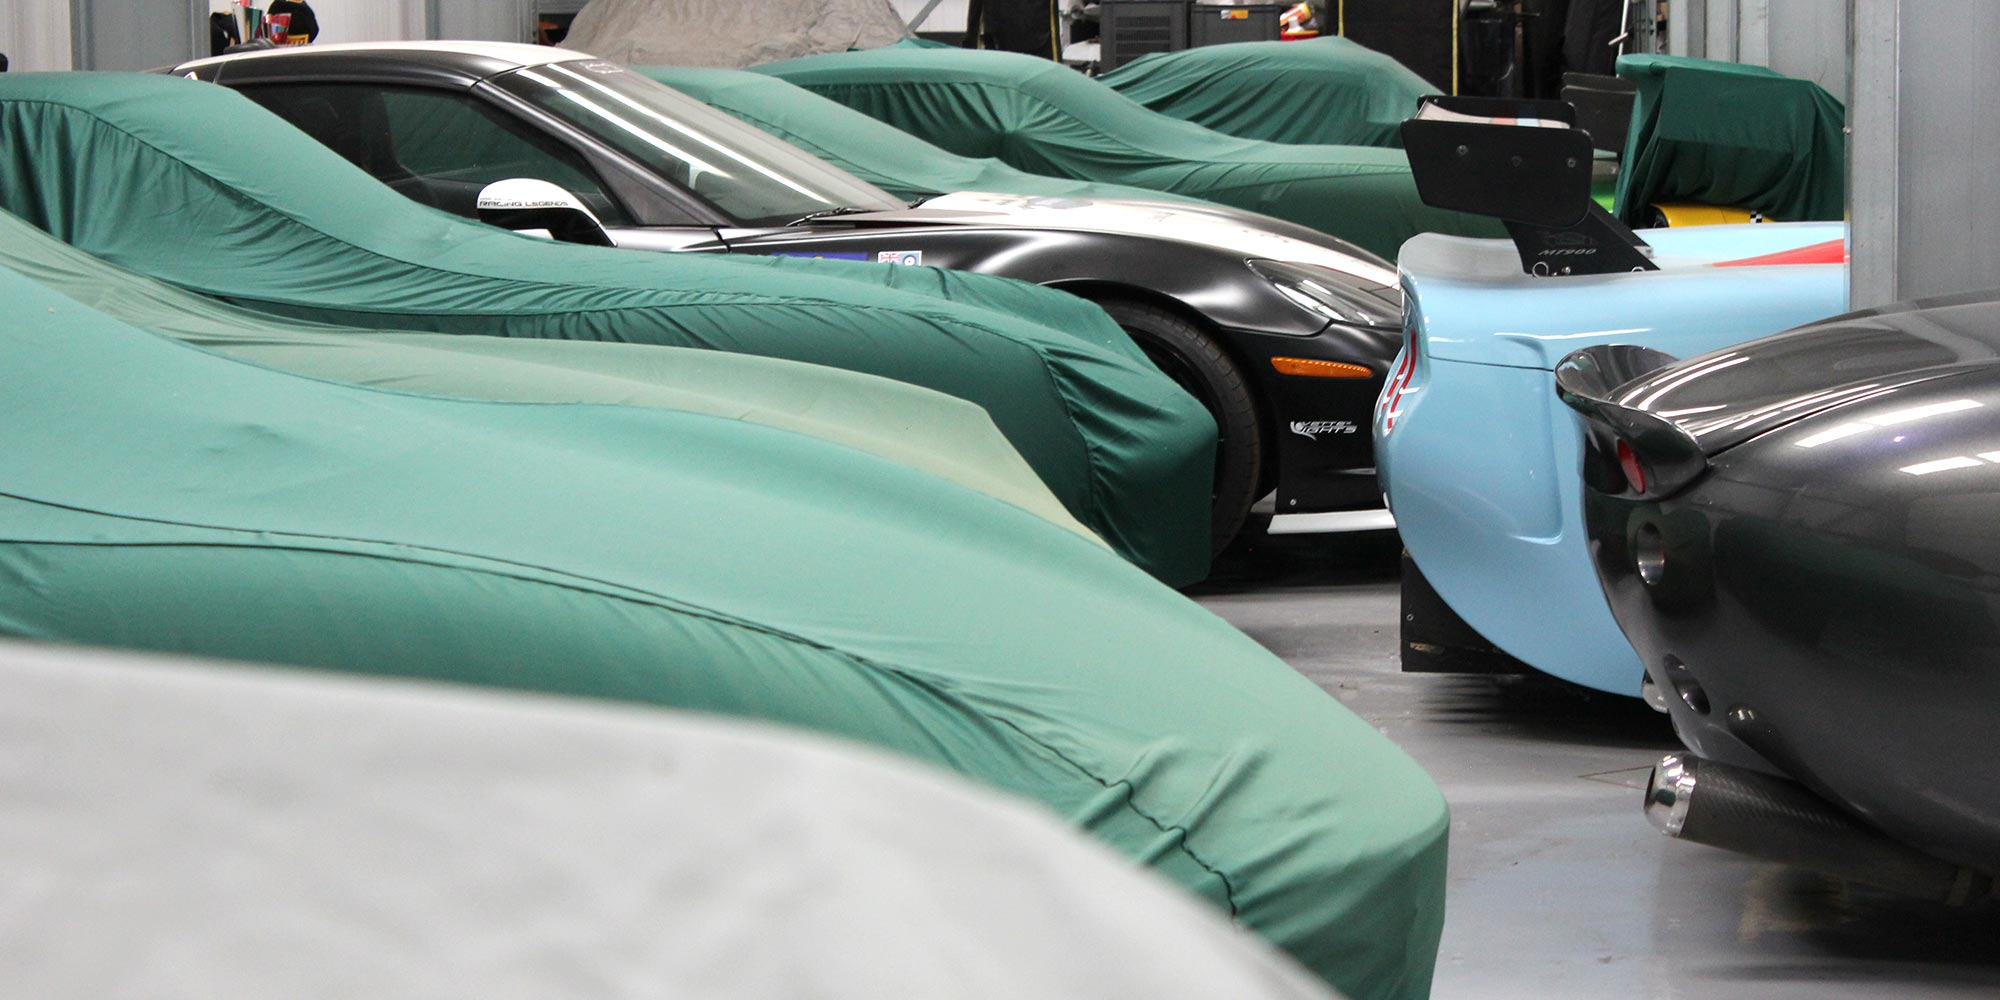 panoramic image of vehicles housed at topcats racing workshop safely stored with car covers